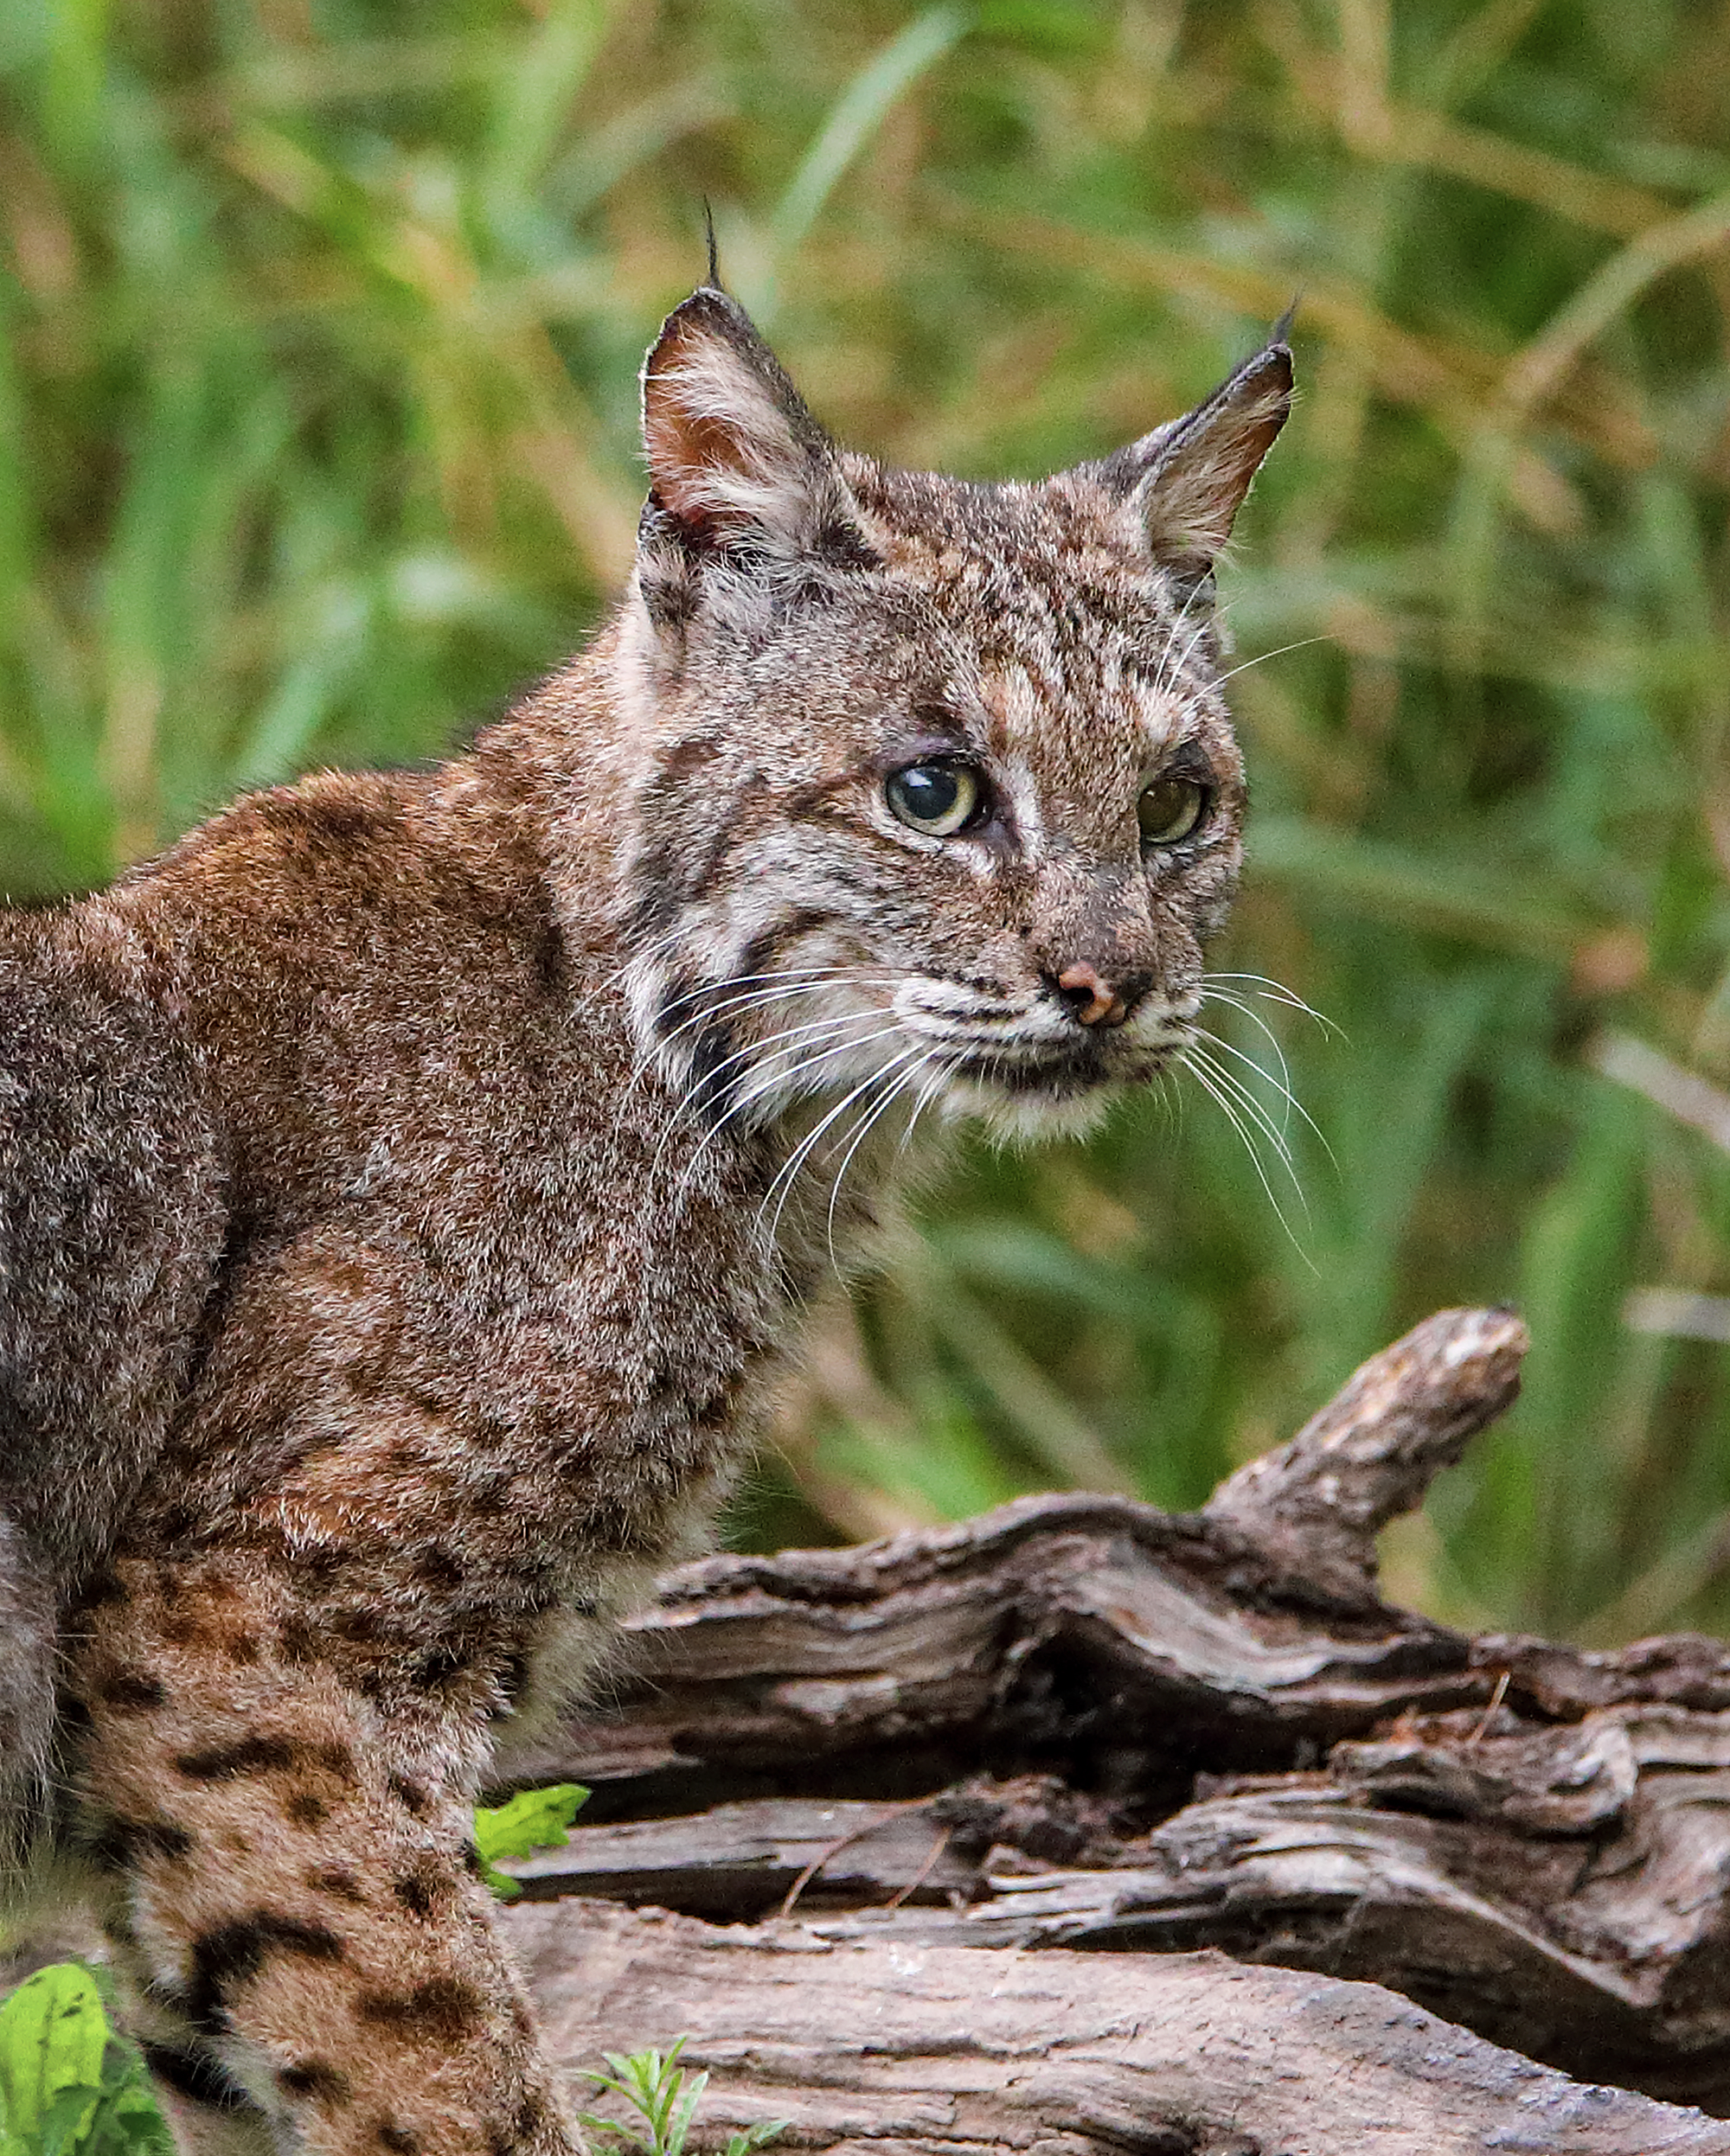 4. Bobcat close up, off Bensten Rio Grande Valley State Park, Texas